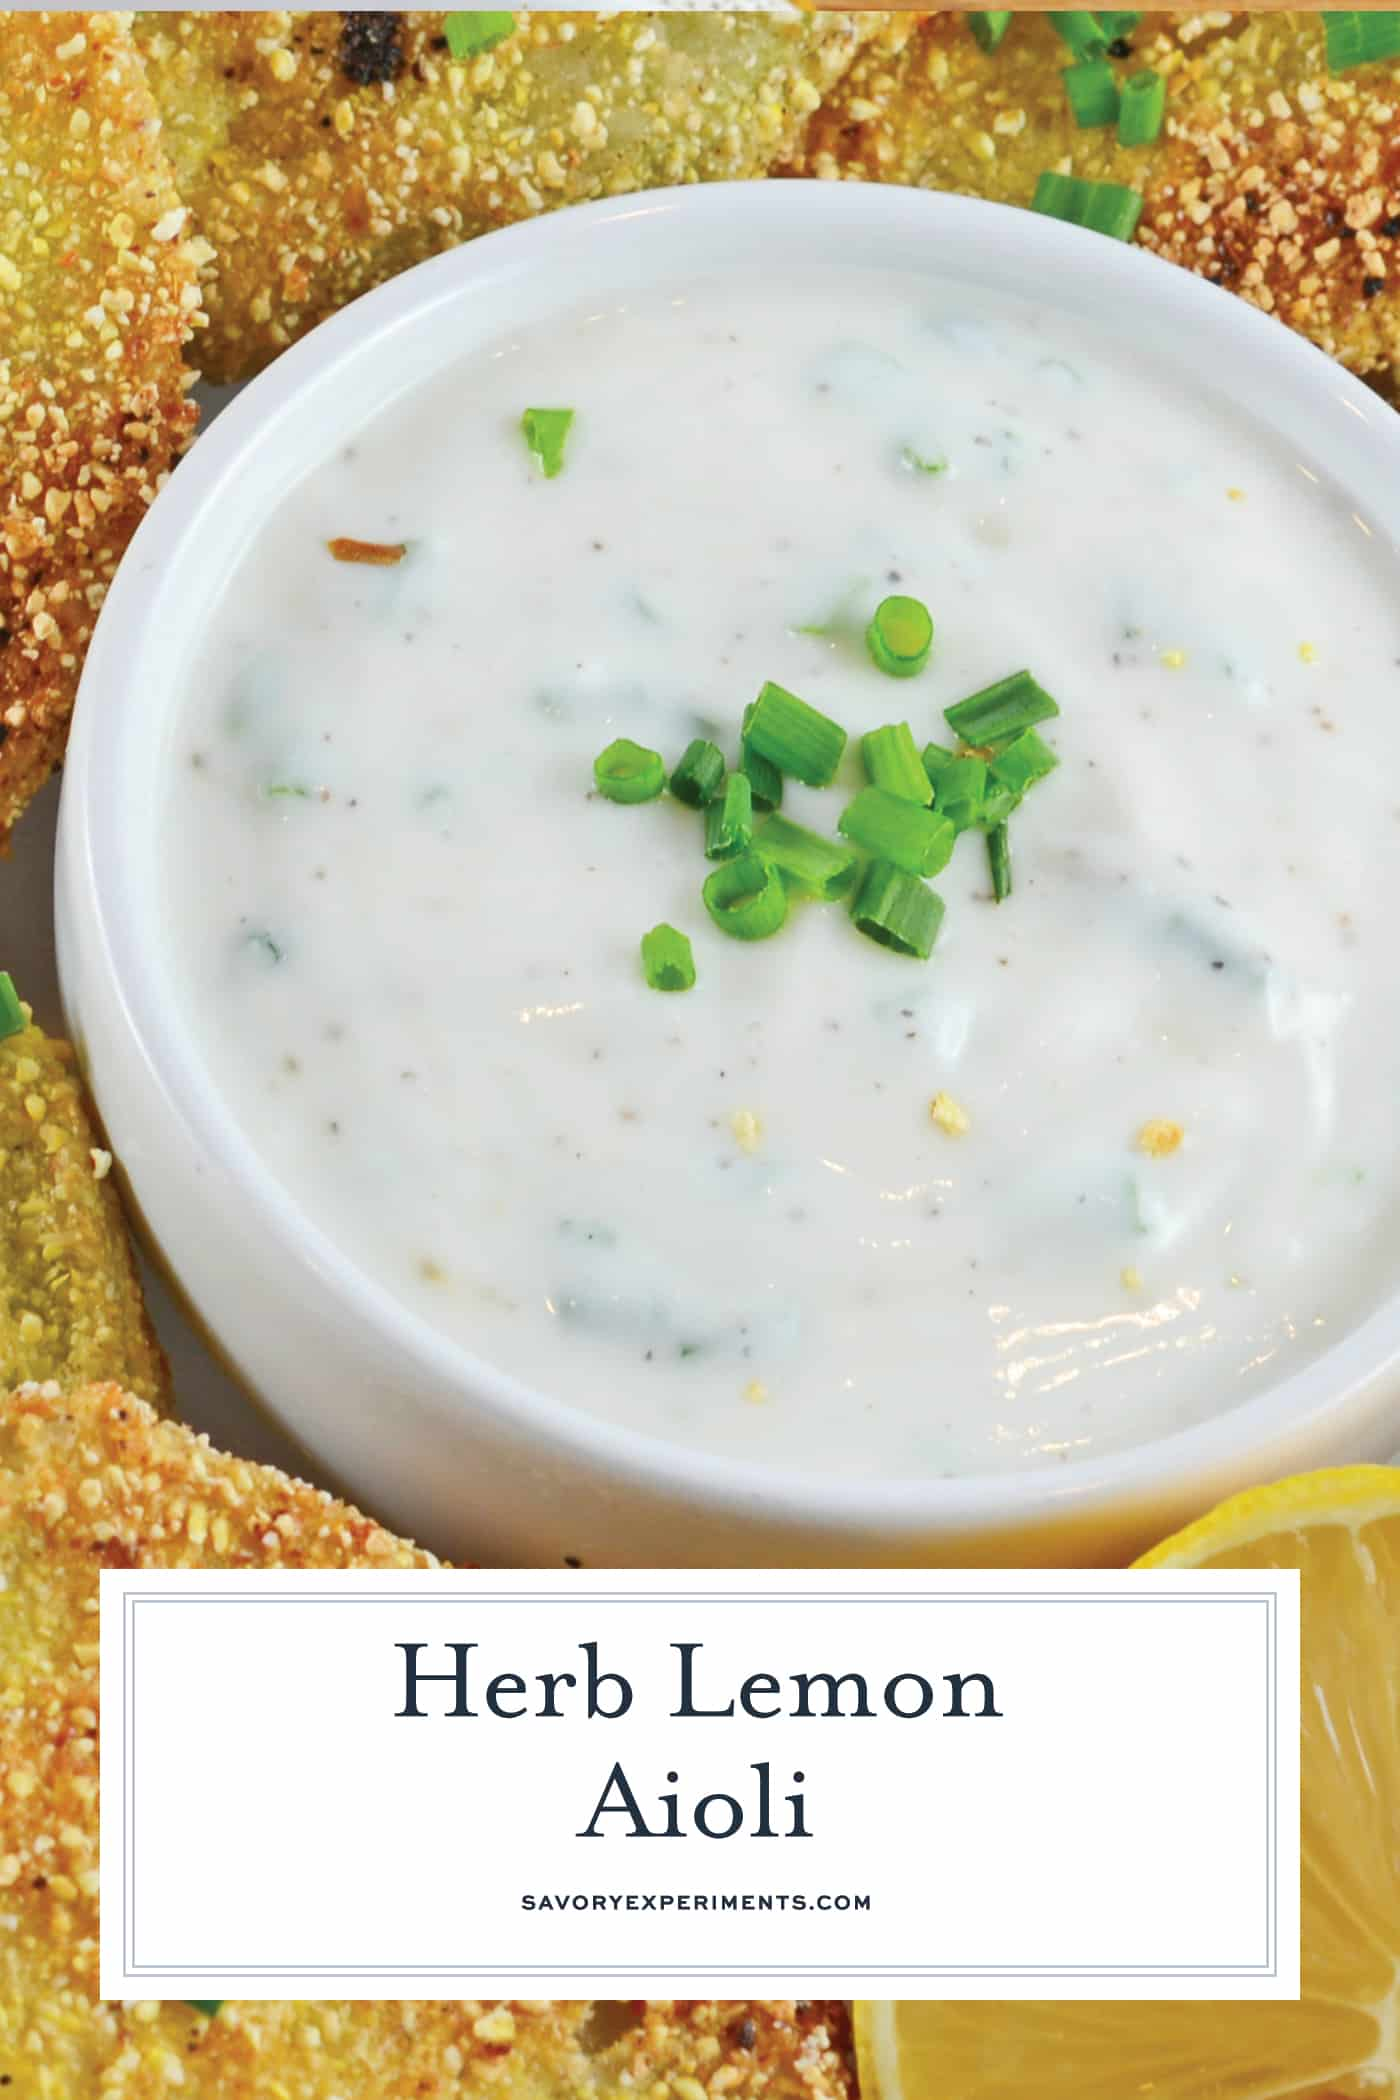 Herb Lemon Aioli is a delicious condiment perfect for sandwiches, as a dipping sauce and even as a marinade!#aiolirecipe #dippingsauce www.savoryexperiments.com